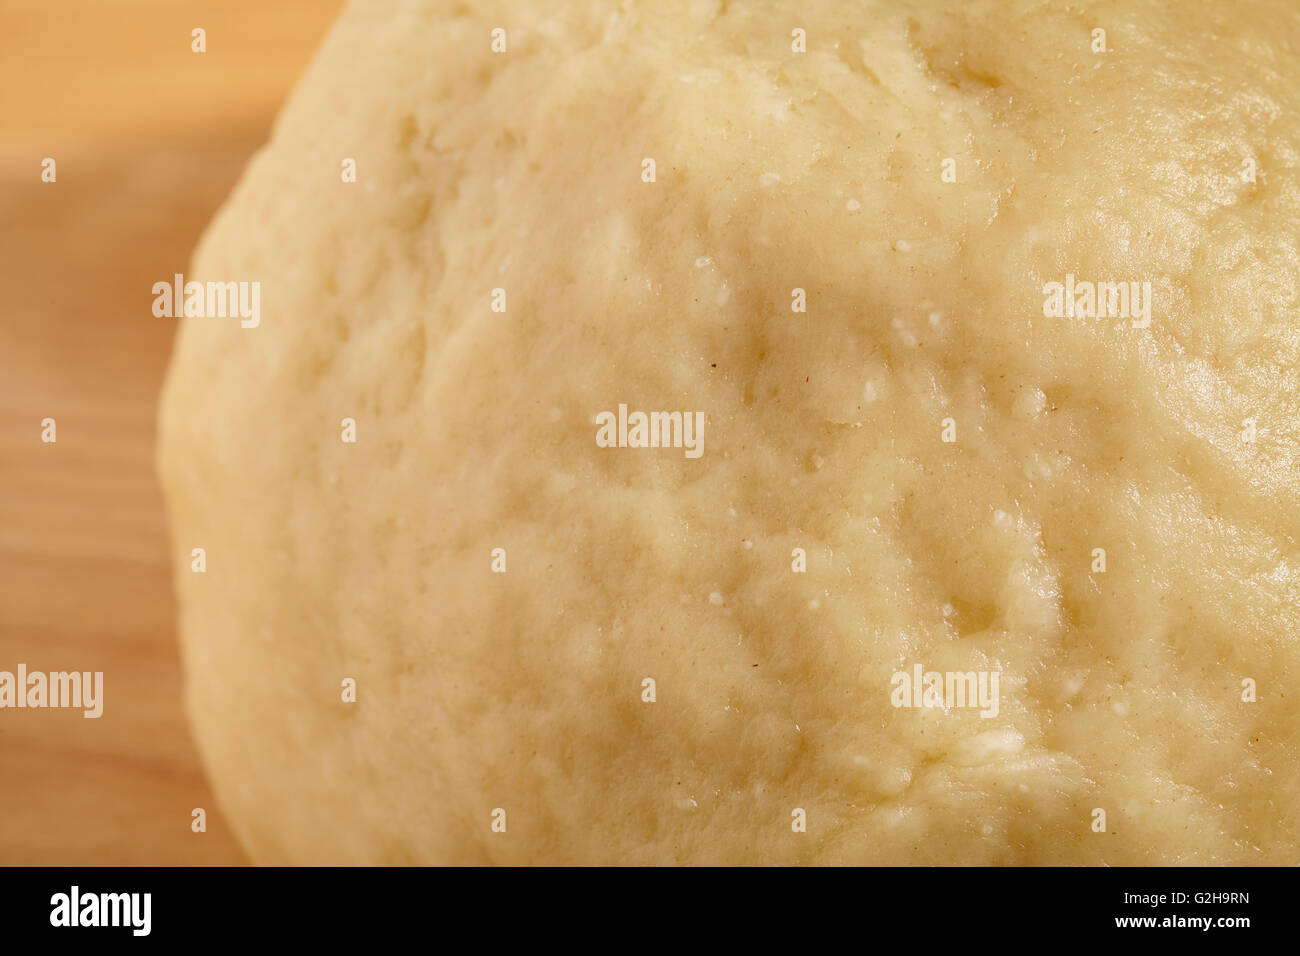 A ball of freshly made shortcrust pastry dough - Stock Image